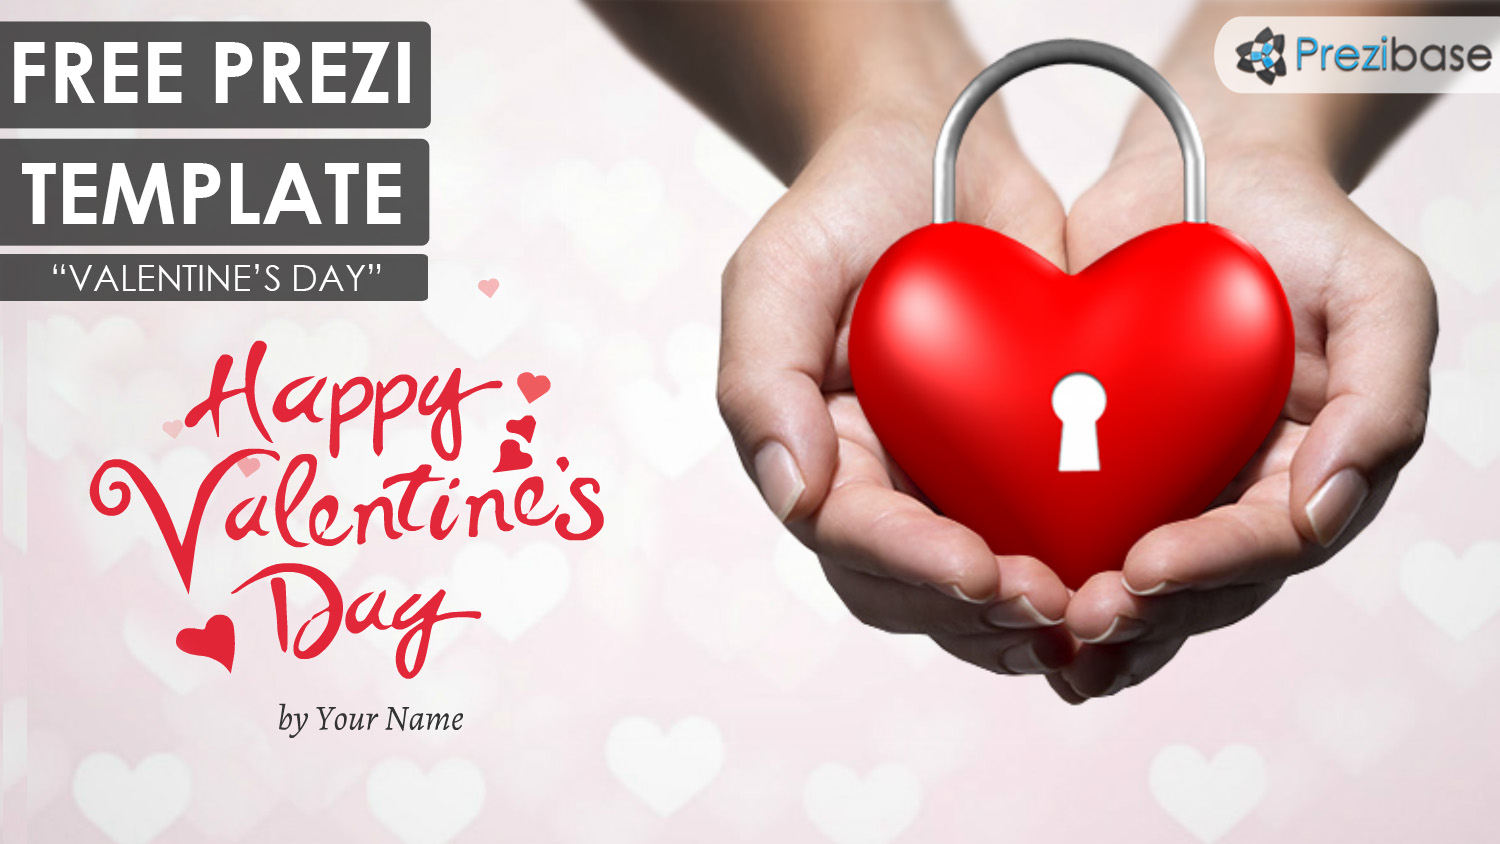 Valentines Day Prezi Template – Animated Valentines Day Cards Free